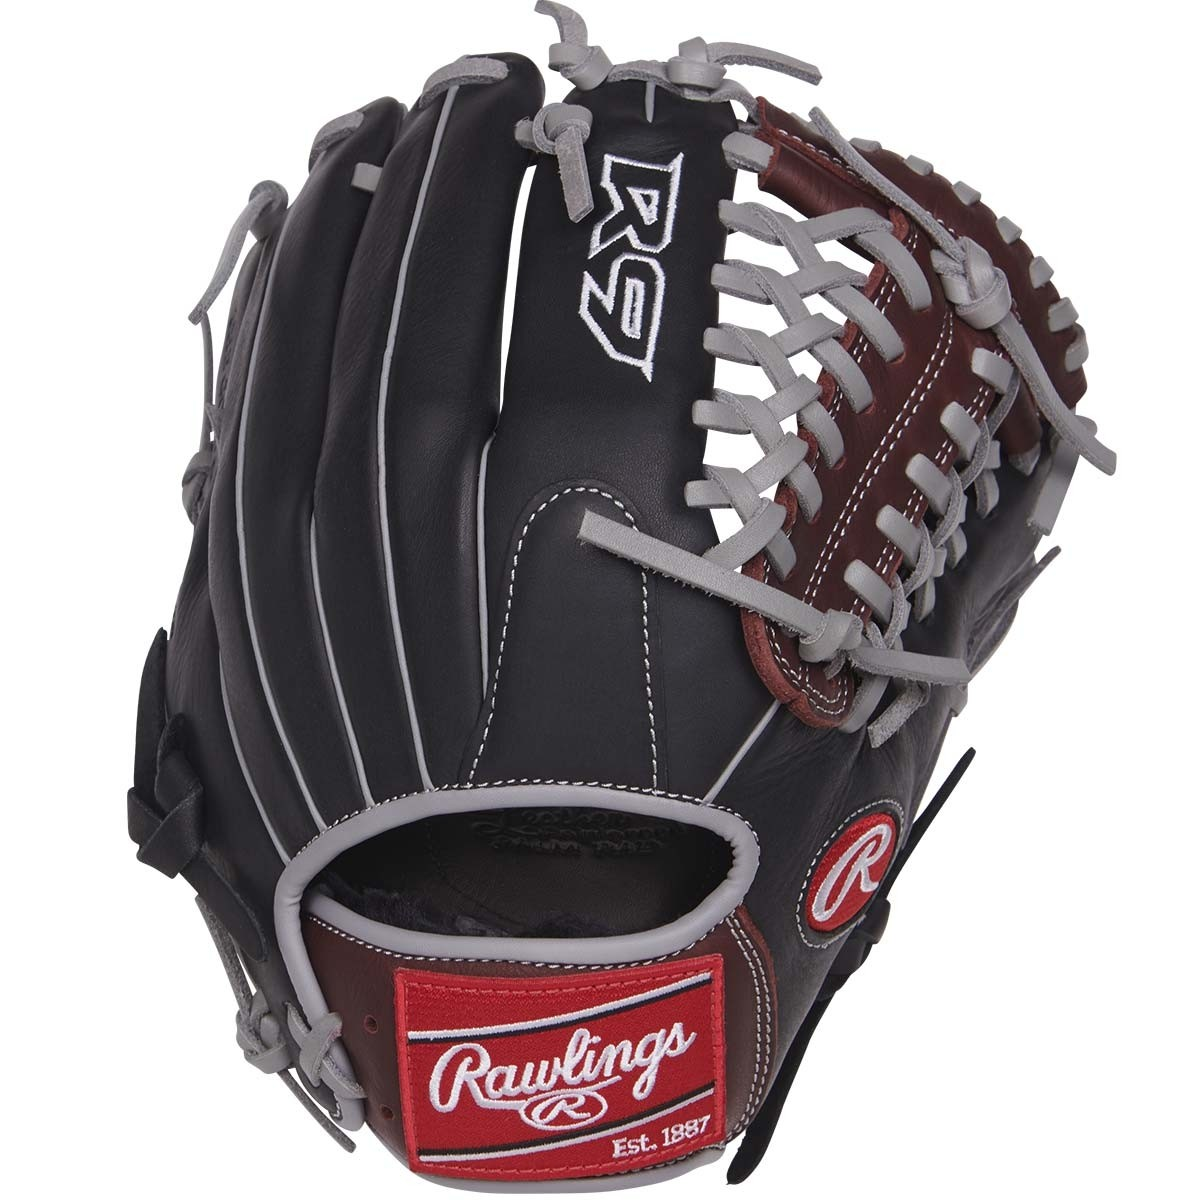 Rawlings 11 75 Quot R9 Infield Pitcher Baseball Glove R9205